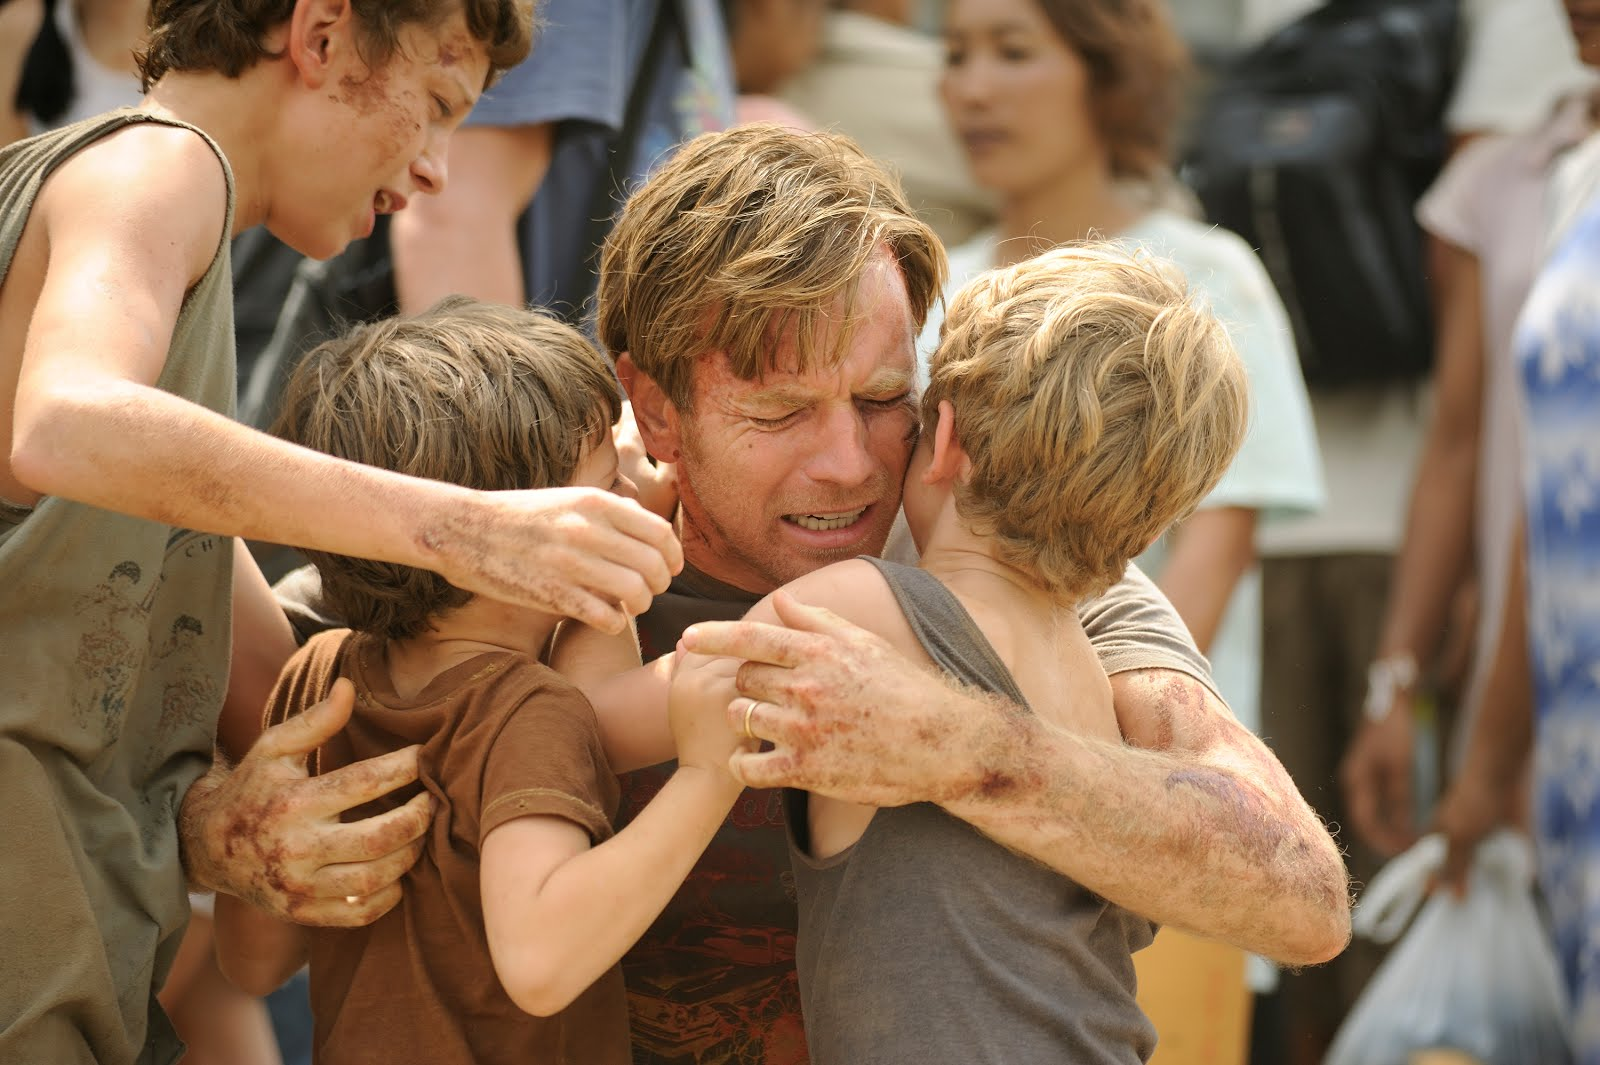 LO IMPOSIBLE 1